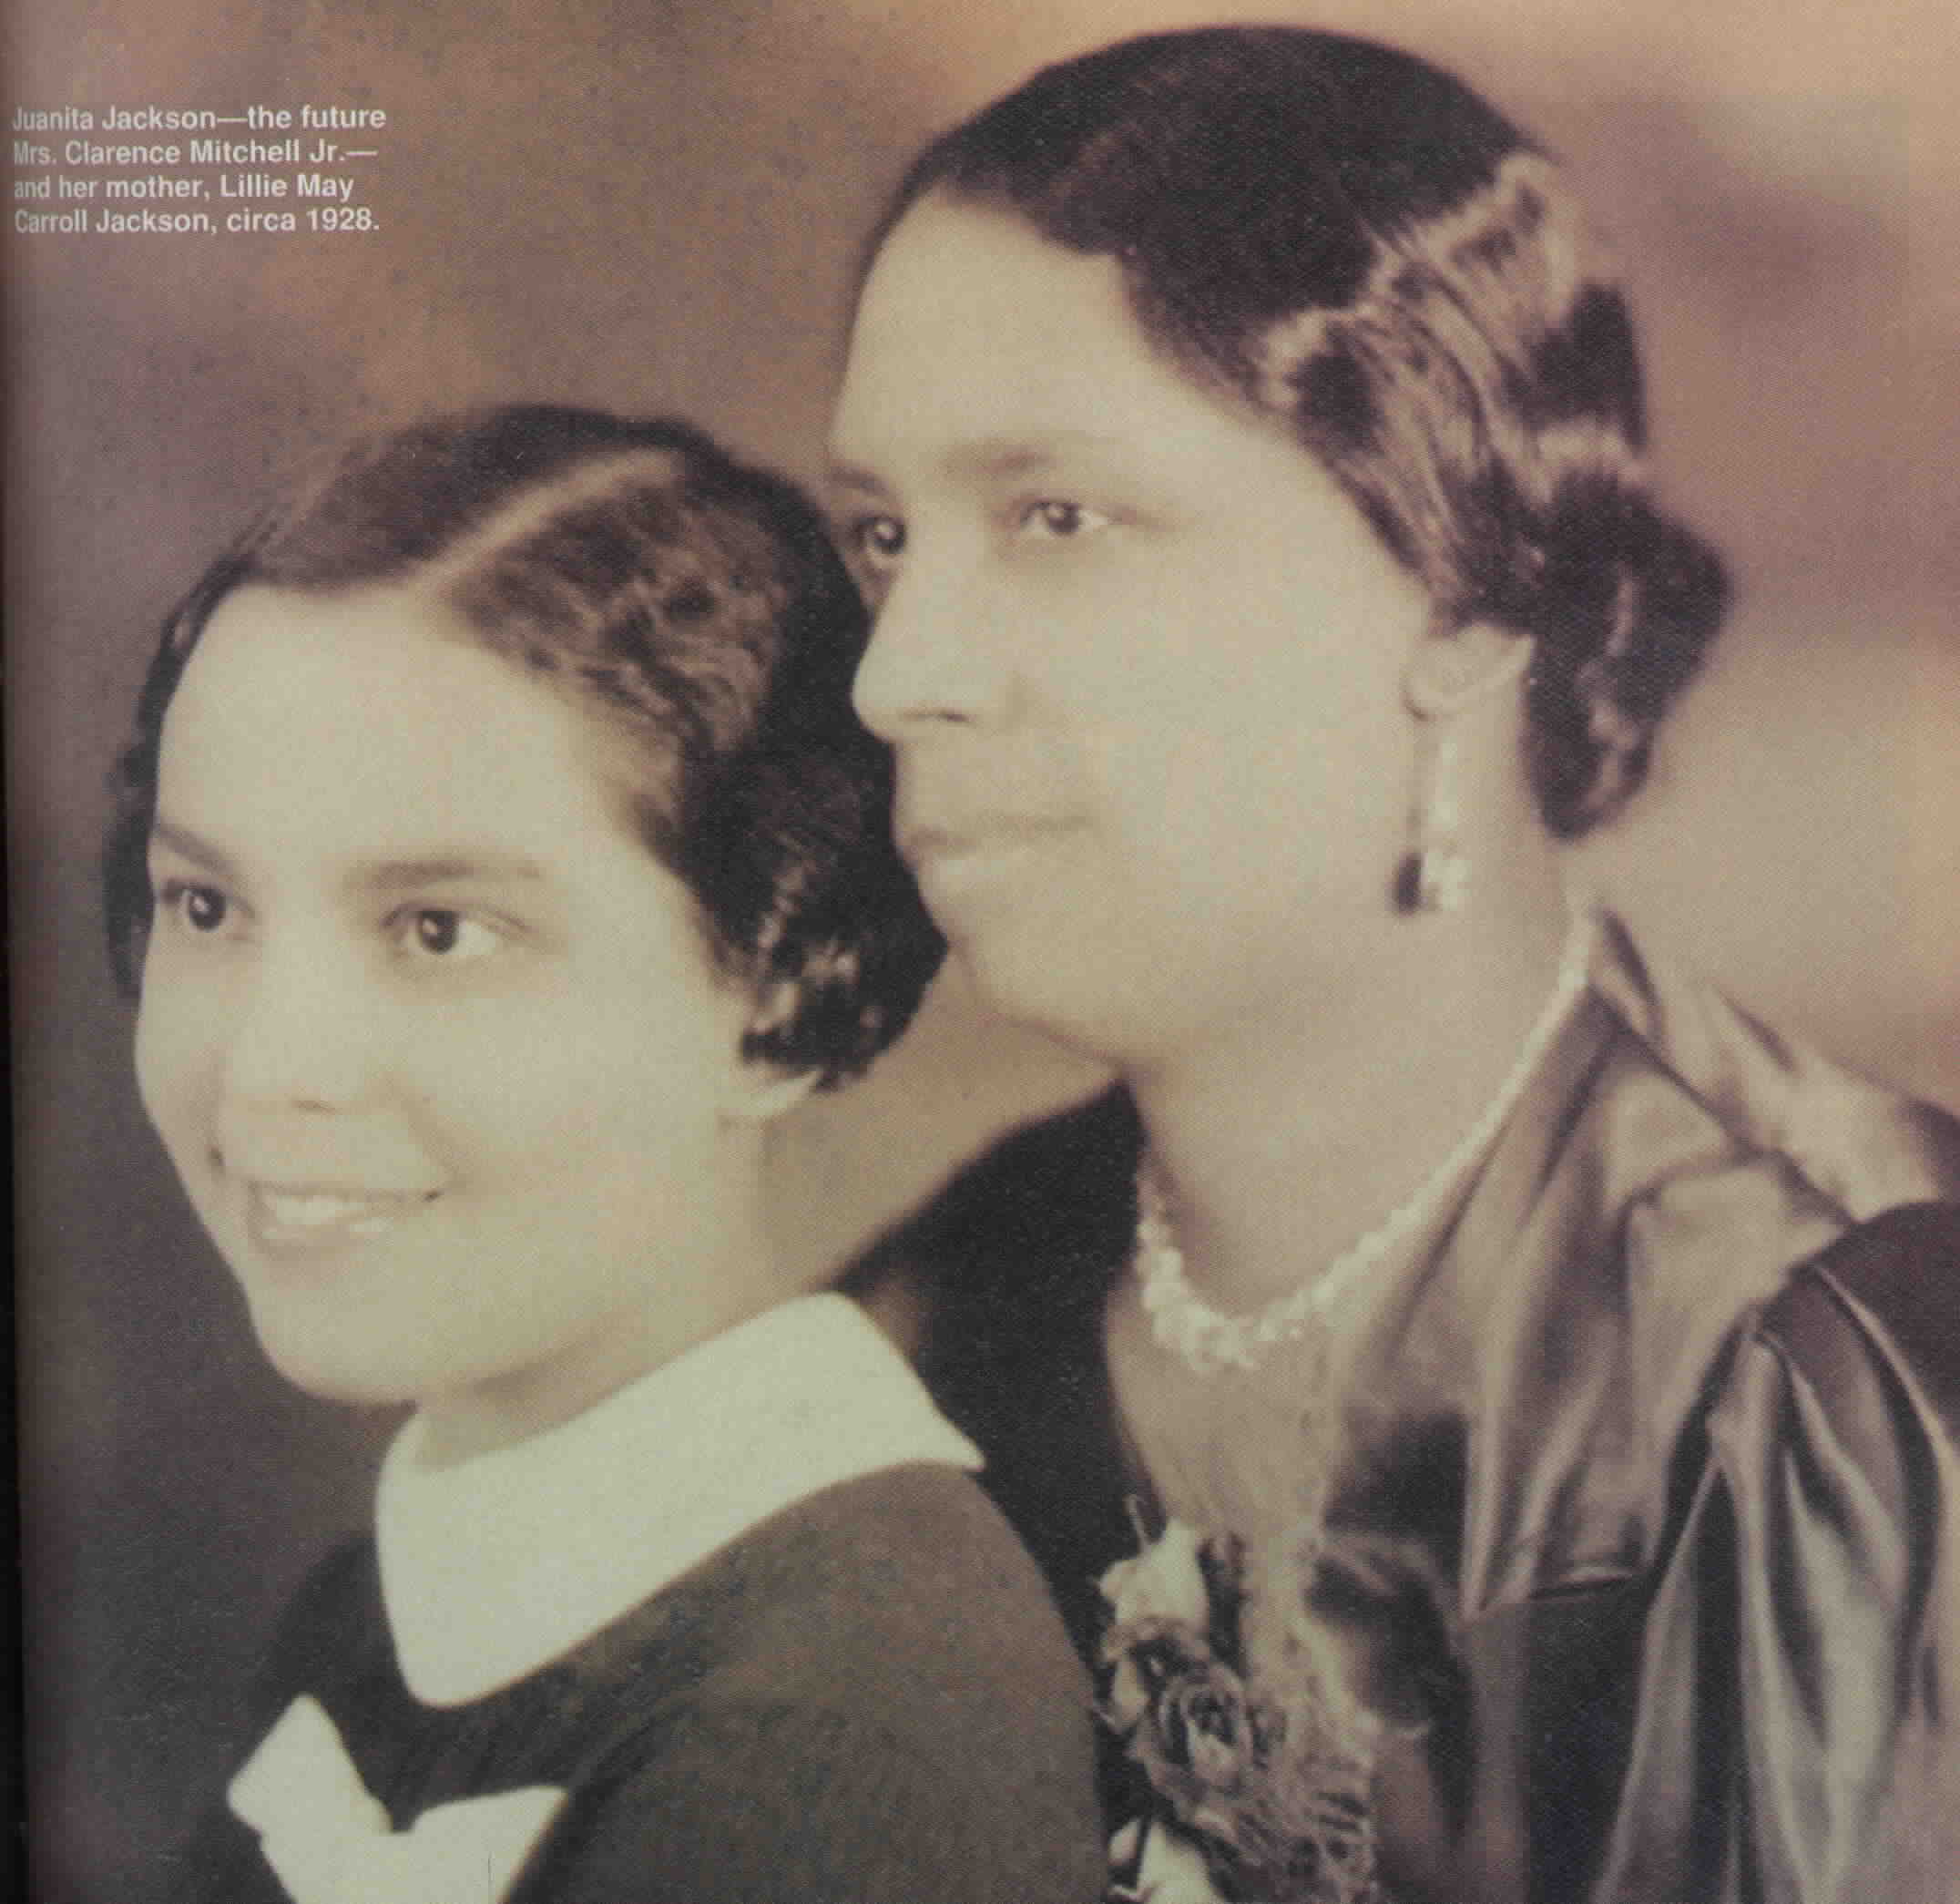 Lillie May Carroll Jackson with her daughter Juanita Jackson Mitchell. Maryland State Archives  MSA SC 3520-13566